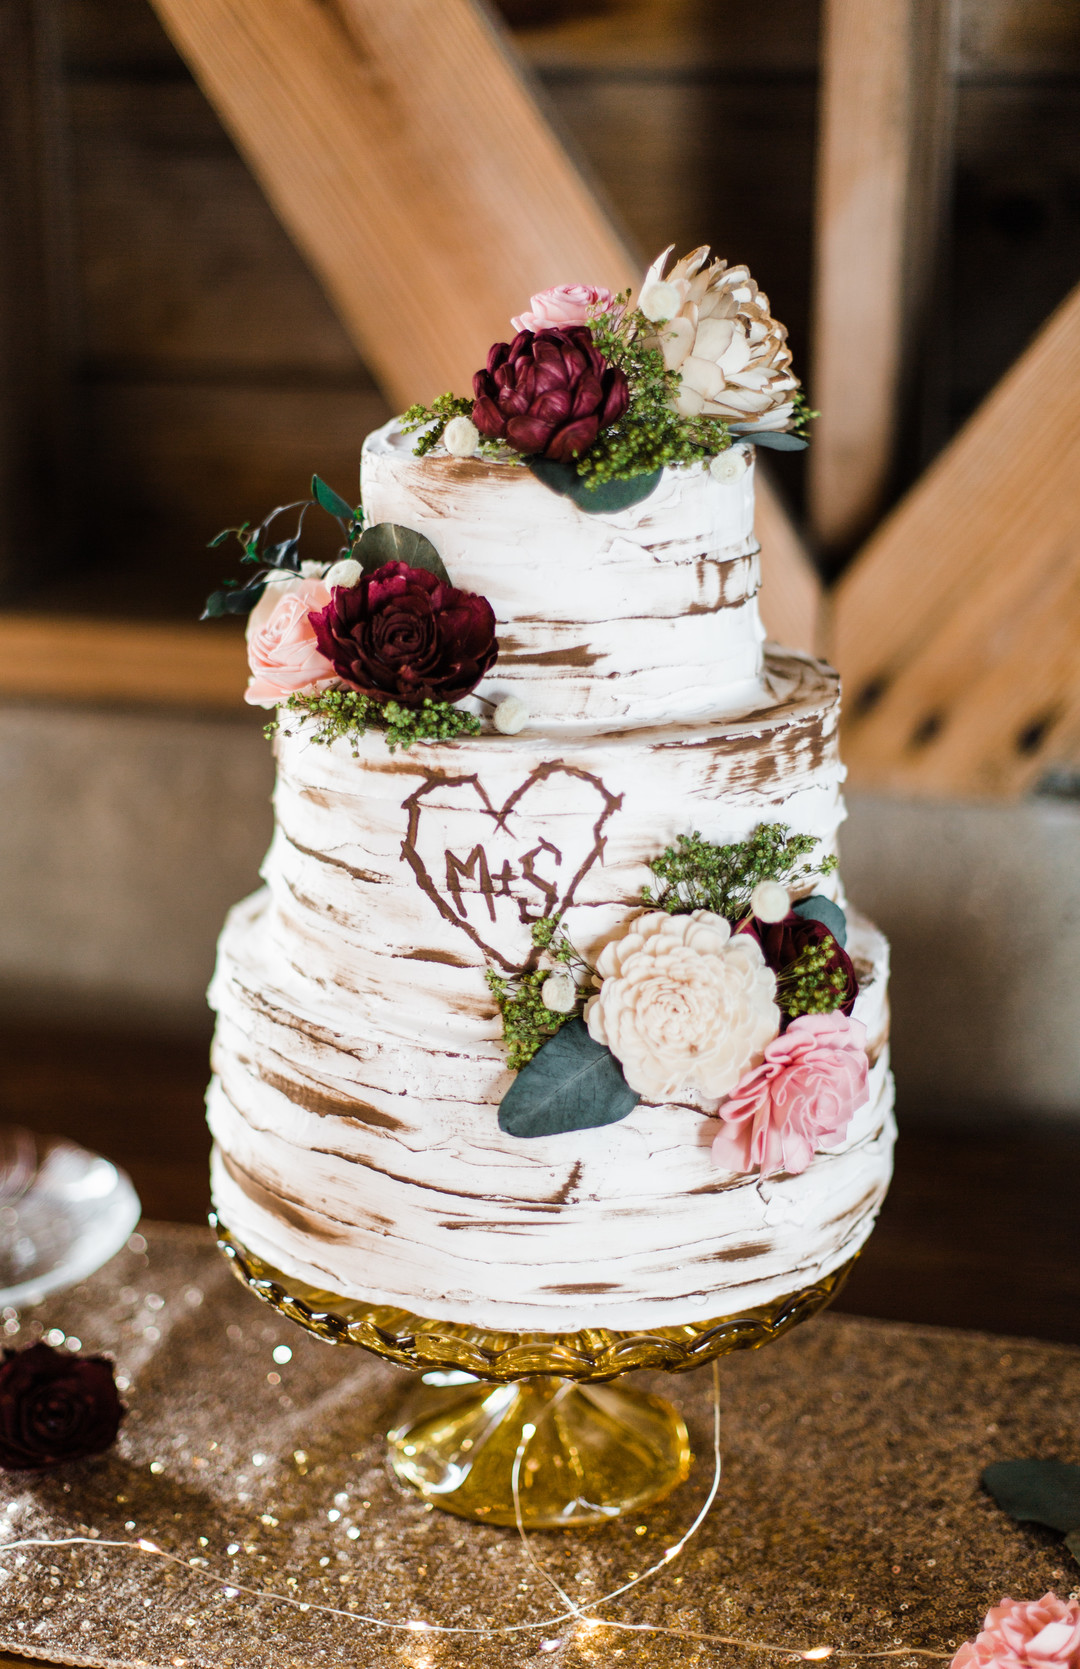 Semi-naked wedding cake design: Rustic barn wedding inspiration captured by Grace Rios Photography. See more fall wedding ideas at CHItheeWED.com!